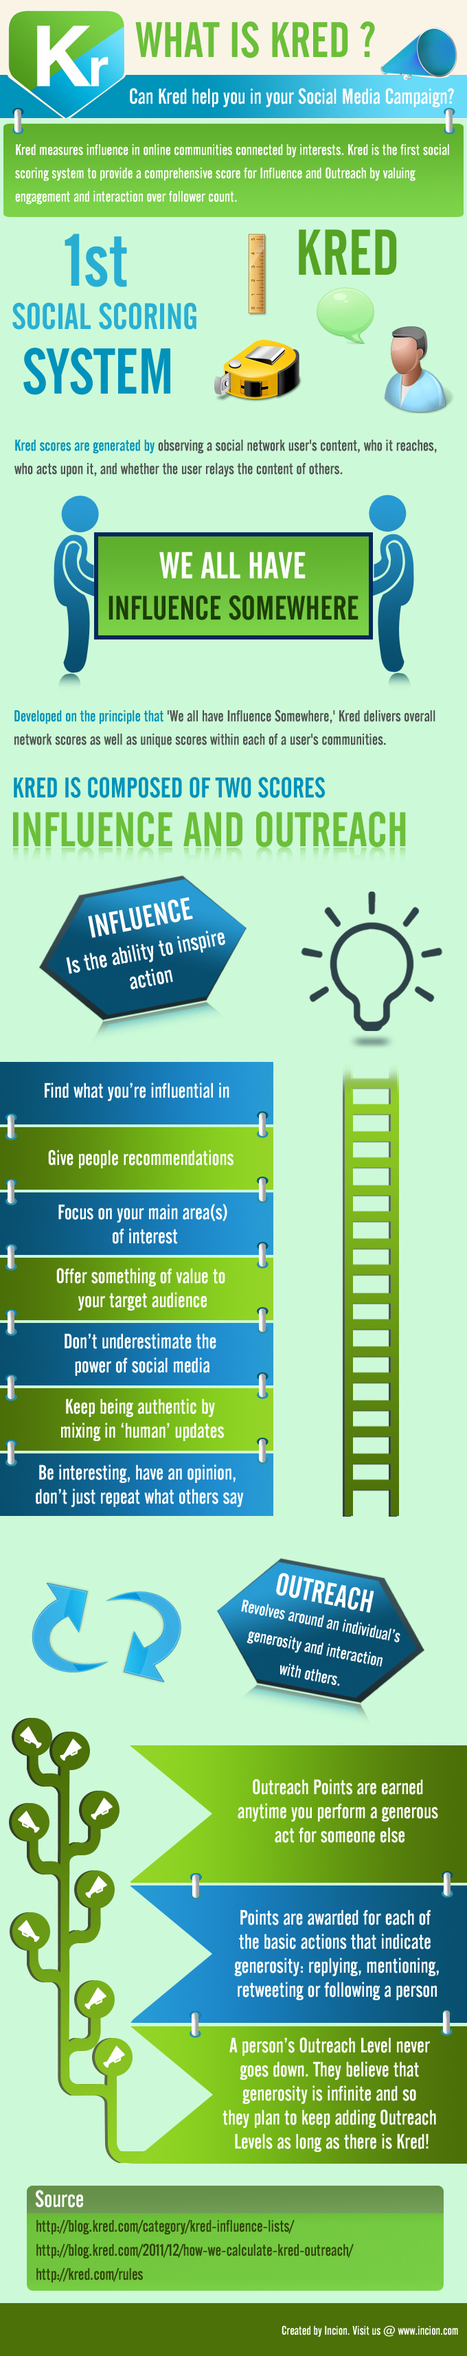 How Does Kred Work? [INFOGRAPHIC] | Better know and better use Social Media today (facebook, twitter...) | Scoop.it